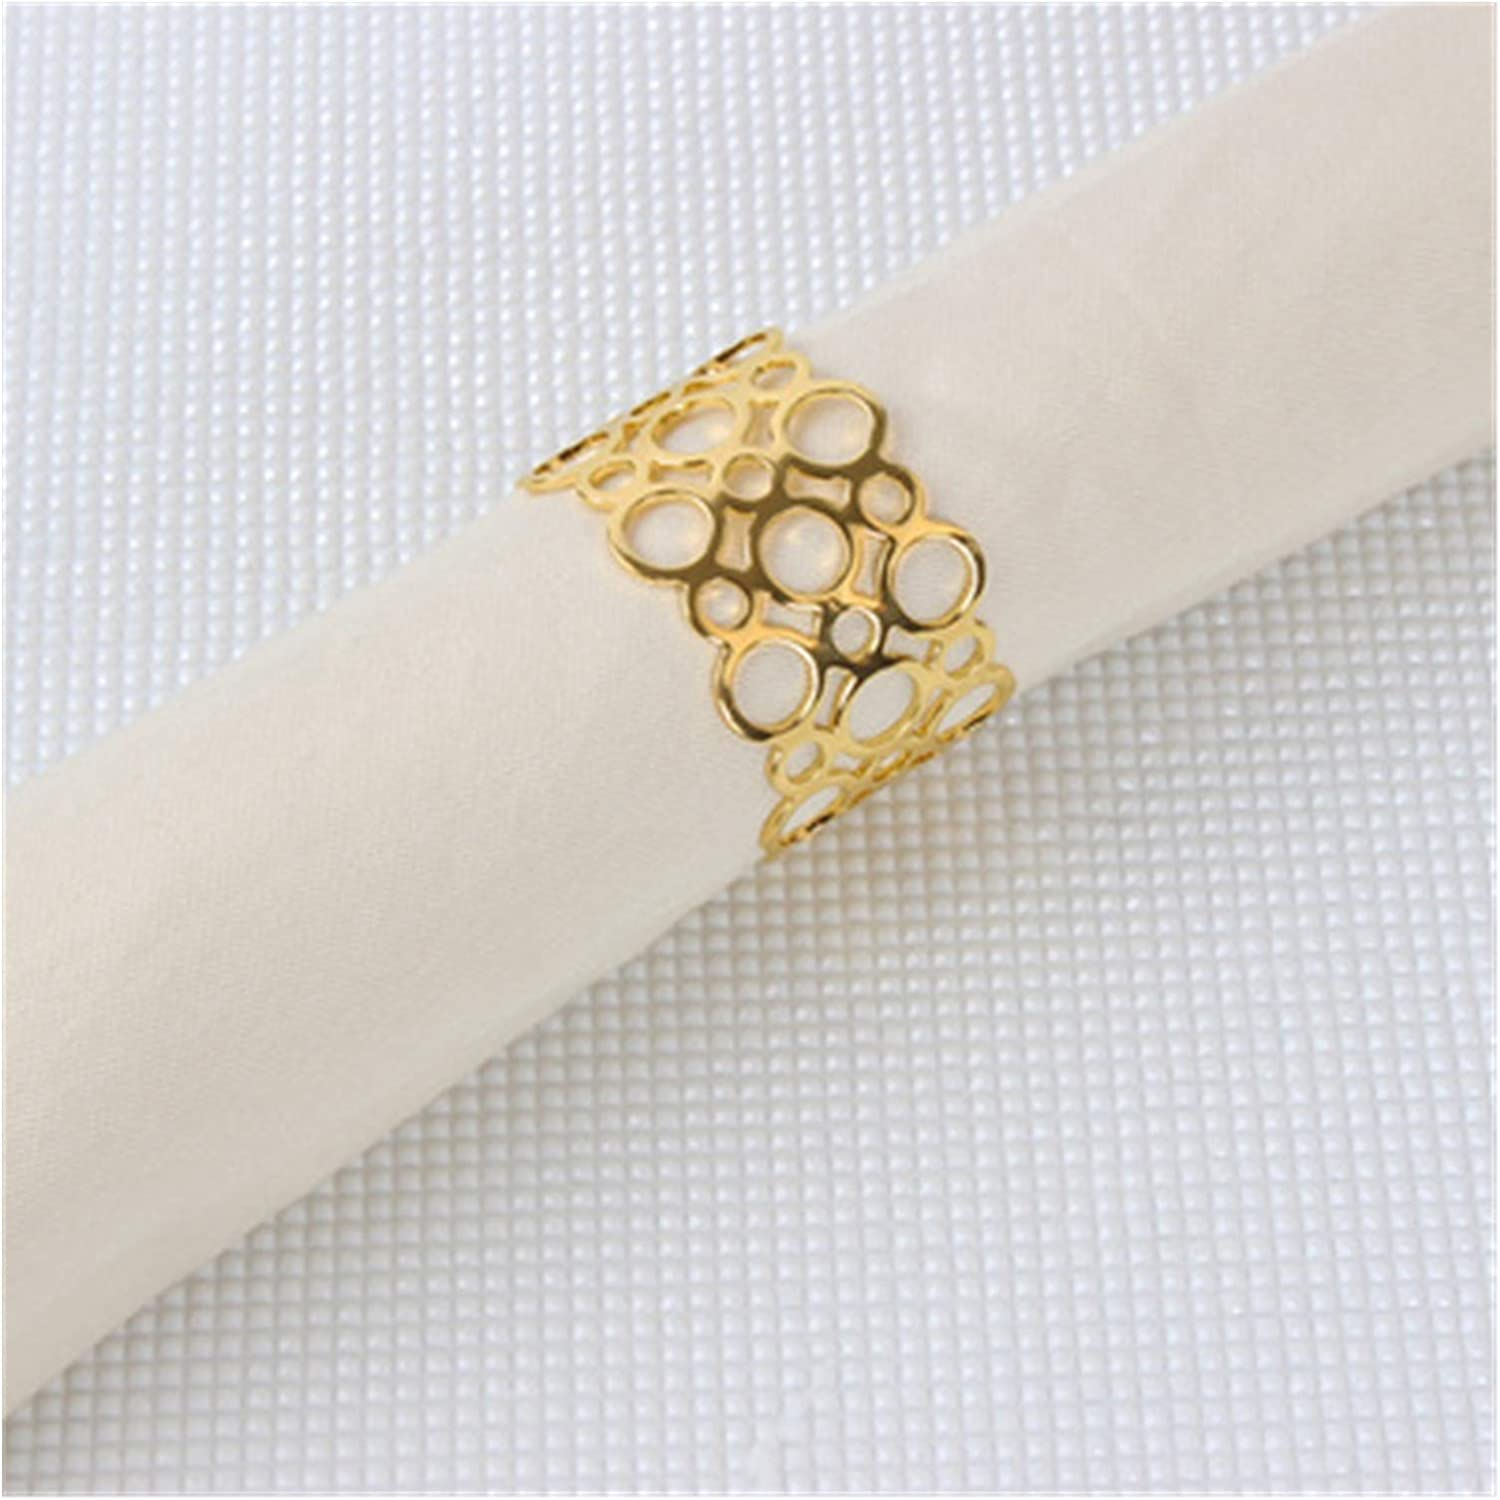 WSZMD Napkin Ring 12Pcs Lot Sales results No. 1 Hollow Round Max 50% OFF Beaut Hotel